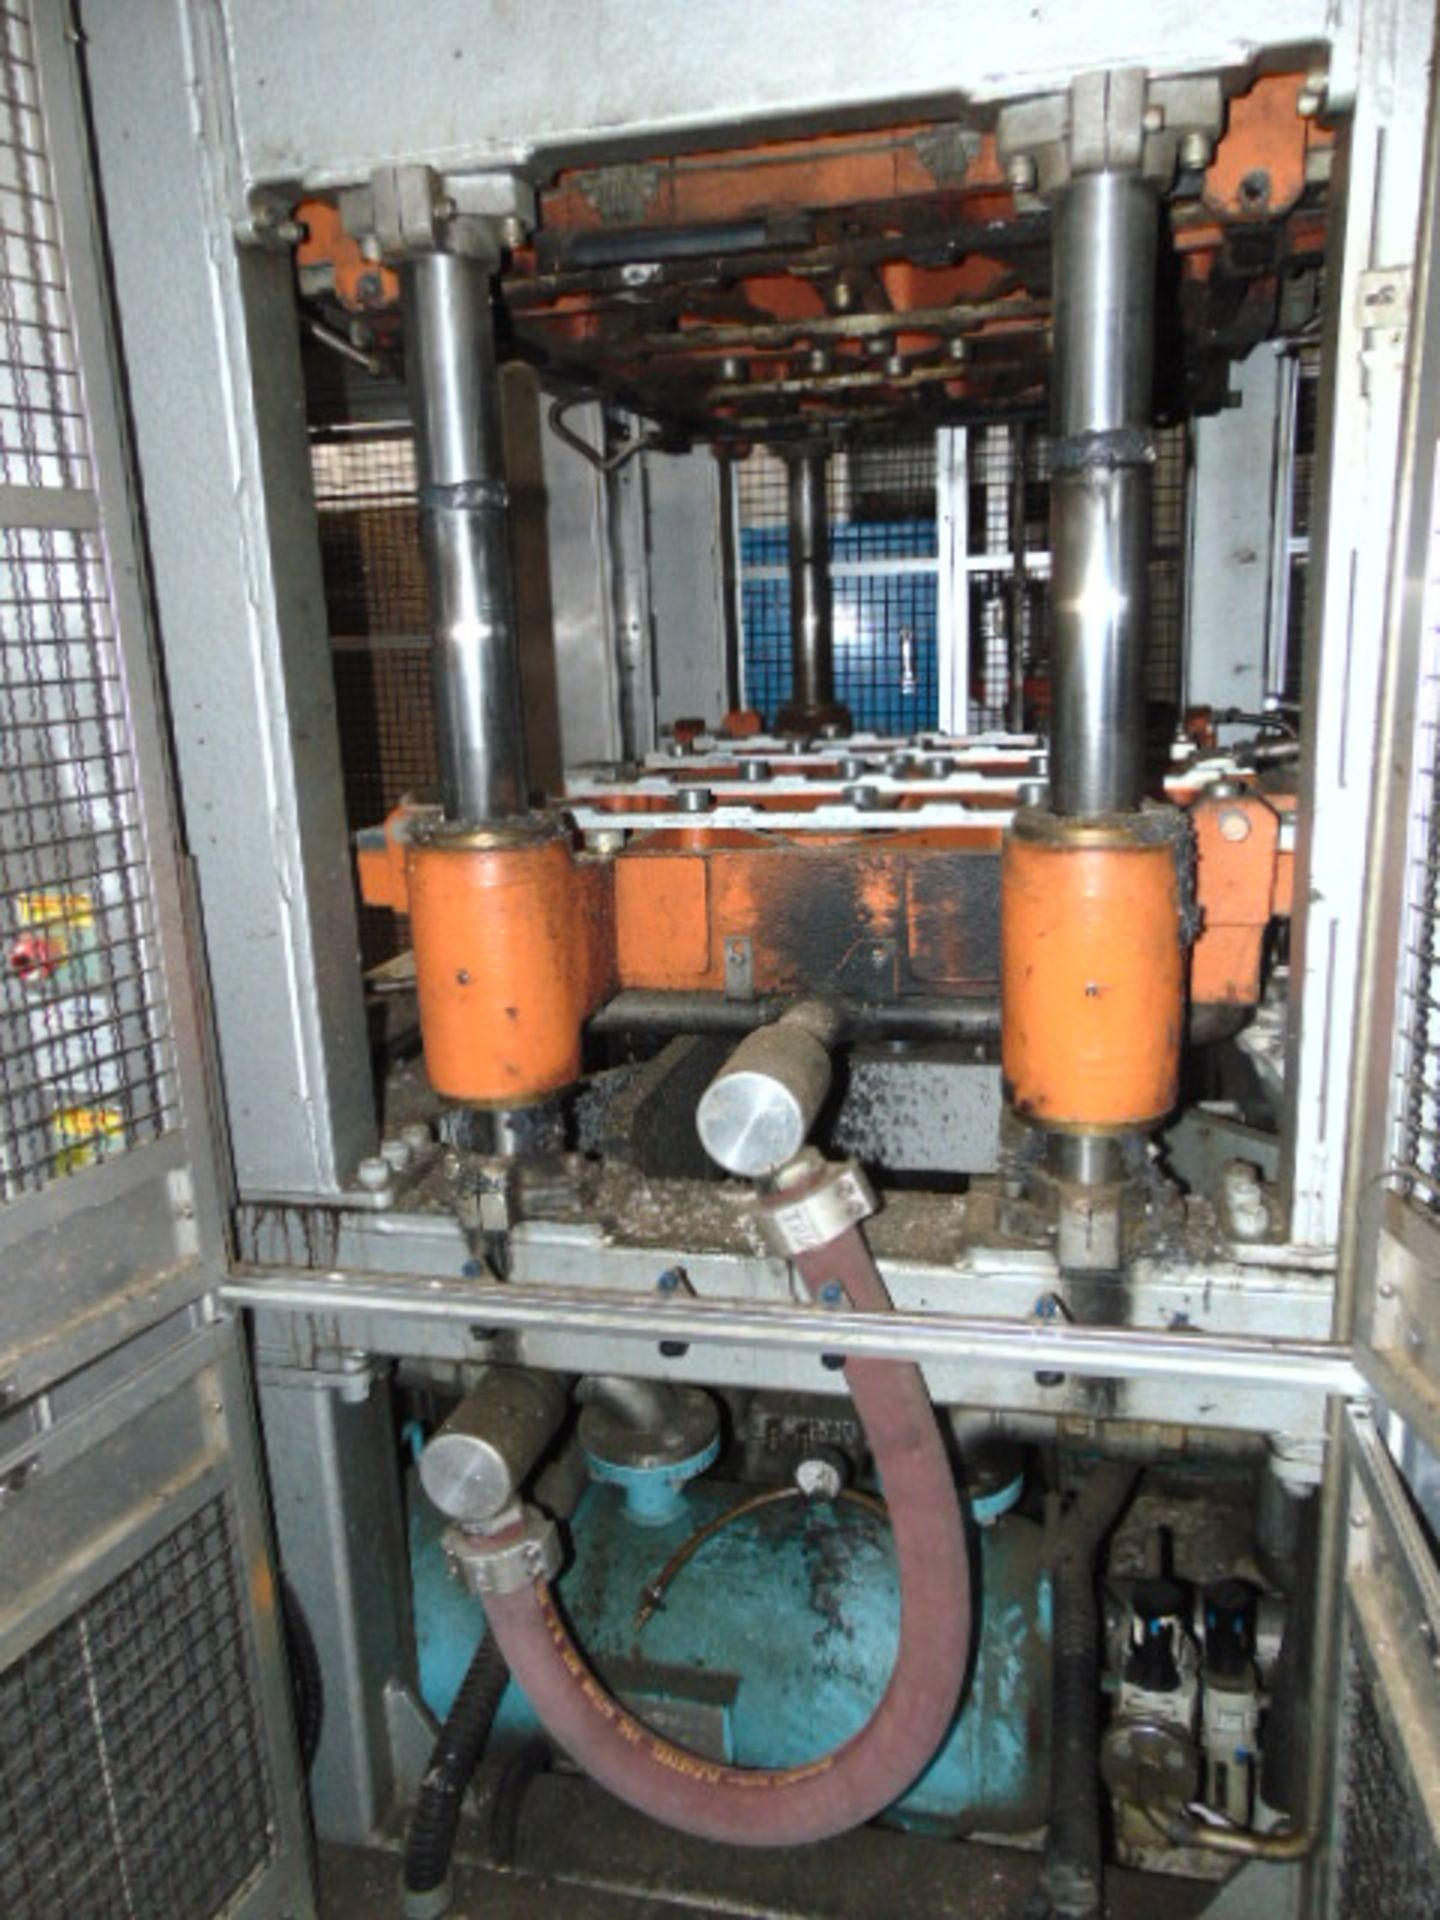 THERMOFORMING MACHINE, TAIWAN PULP MOLDING MDL. TPM-1500, mfg. 5/2015, installed 2016, 1500mm x - Image 4 of 9